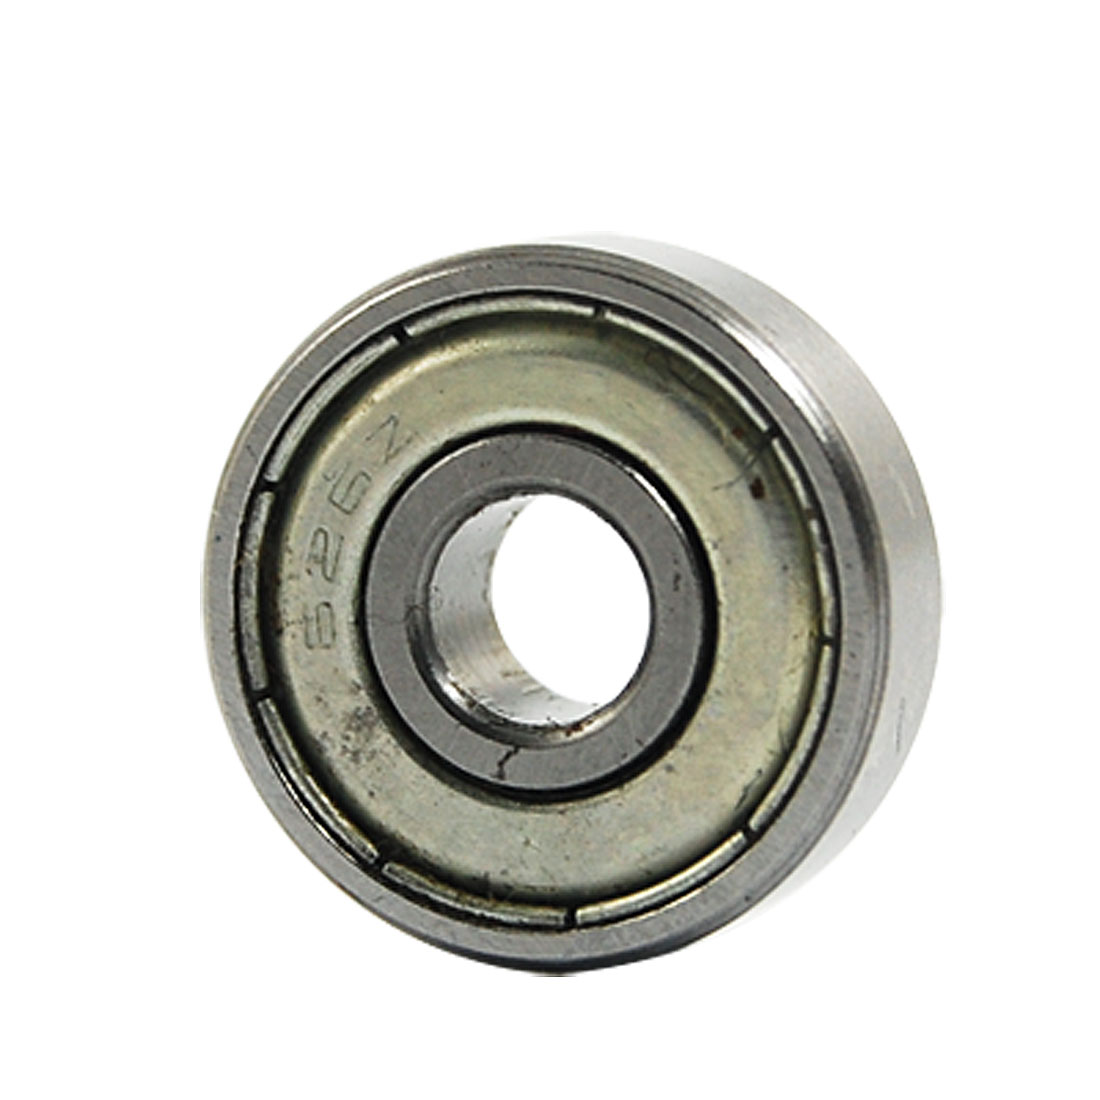 uxcell <font><b>626Z</b></font> Double Sealed Carbon Steel Ball <font><b>Bearing</b></font> 6mm x19mm x6mm image